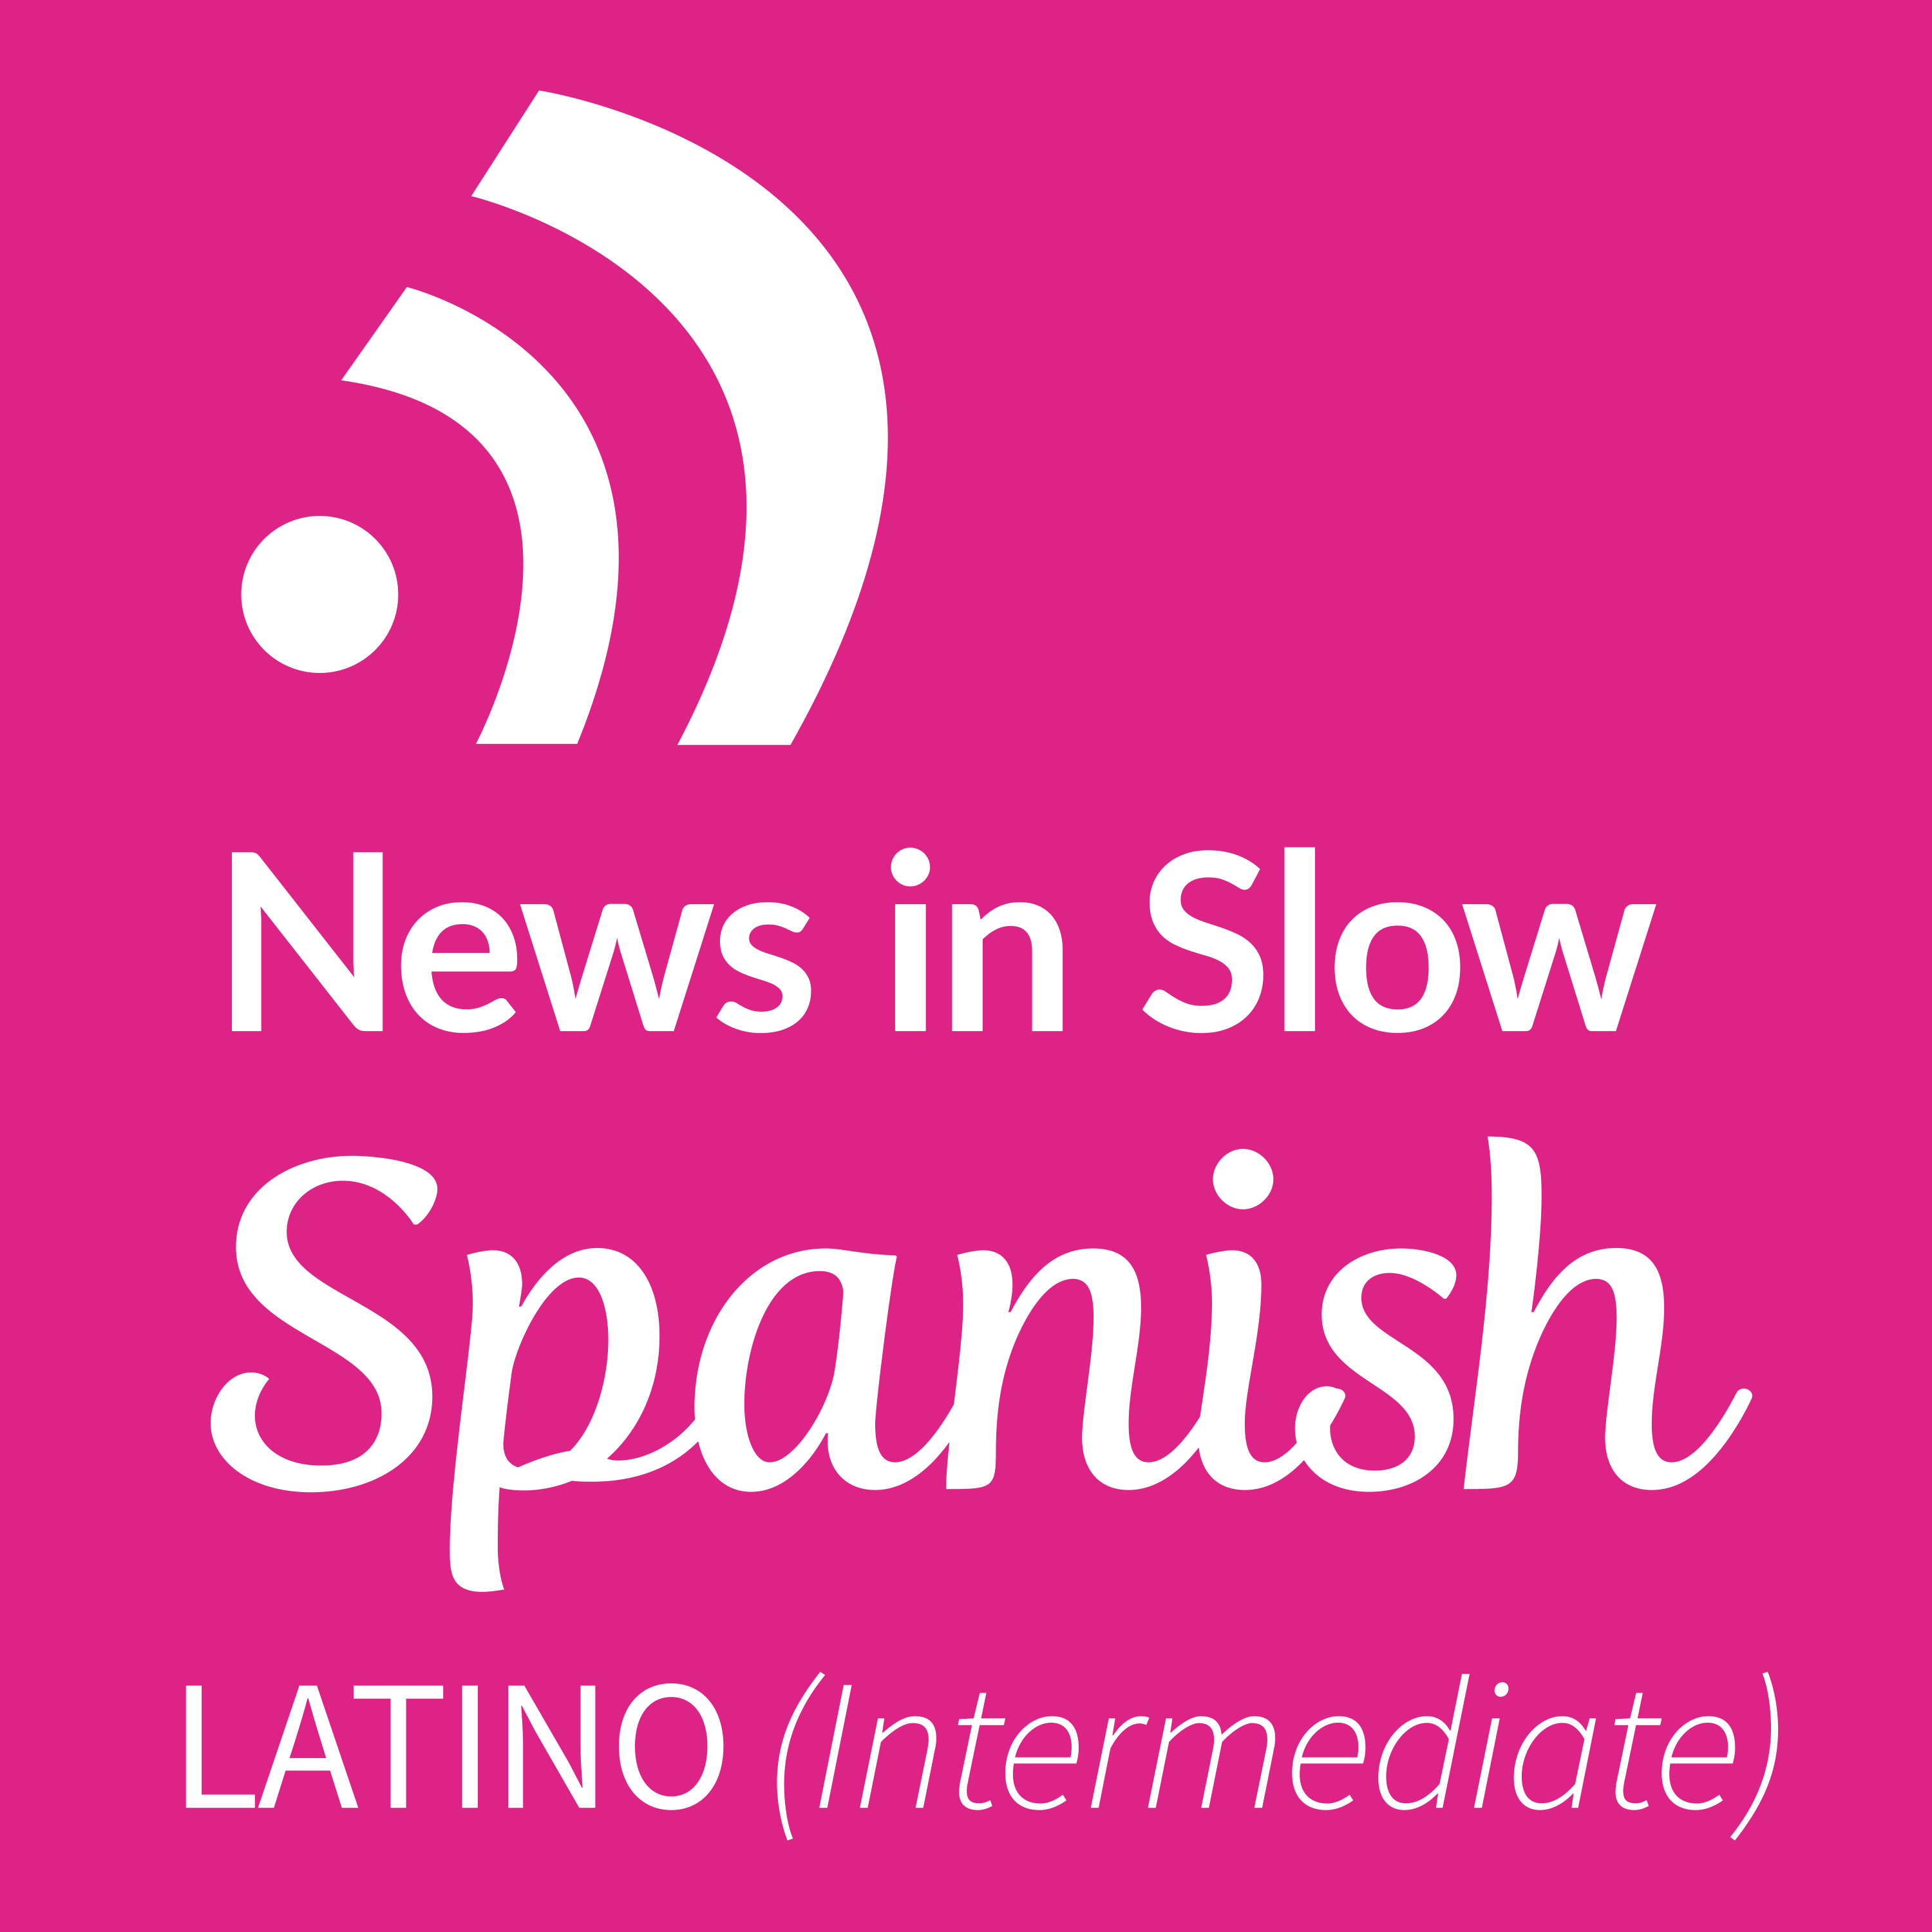 News in Slow Spanish Latino - # 164 - Language learning in the context of current events